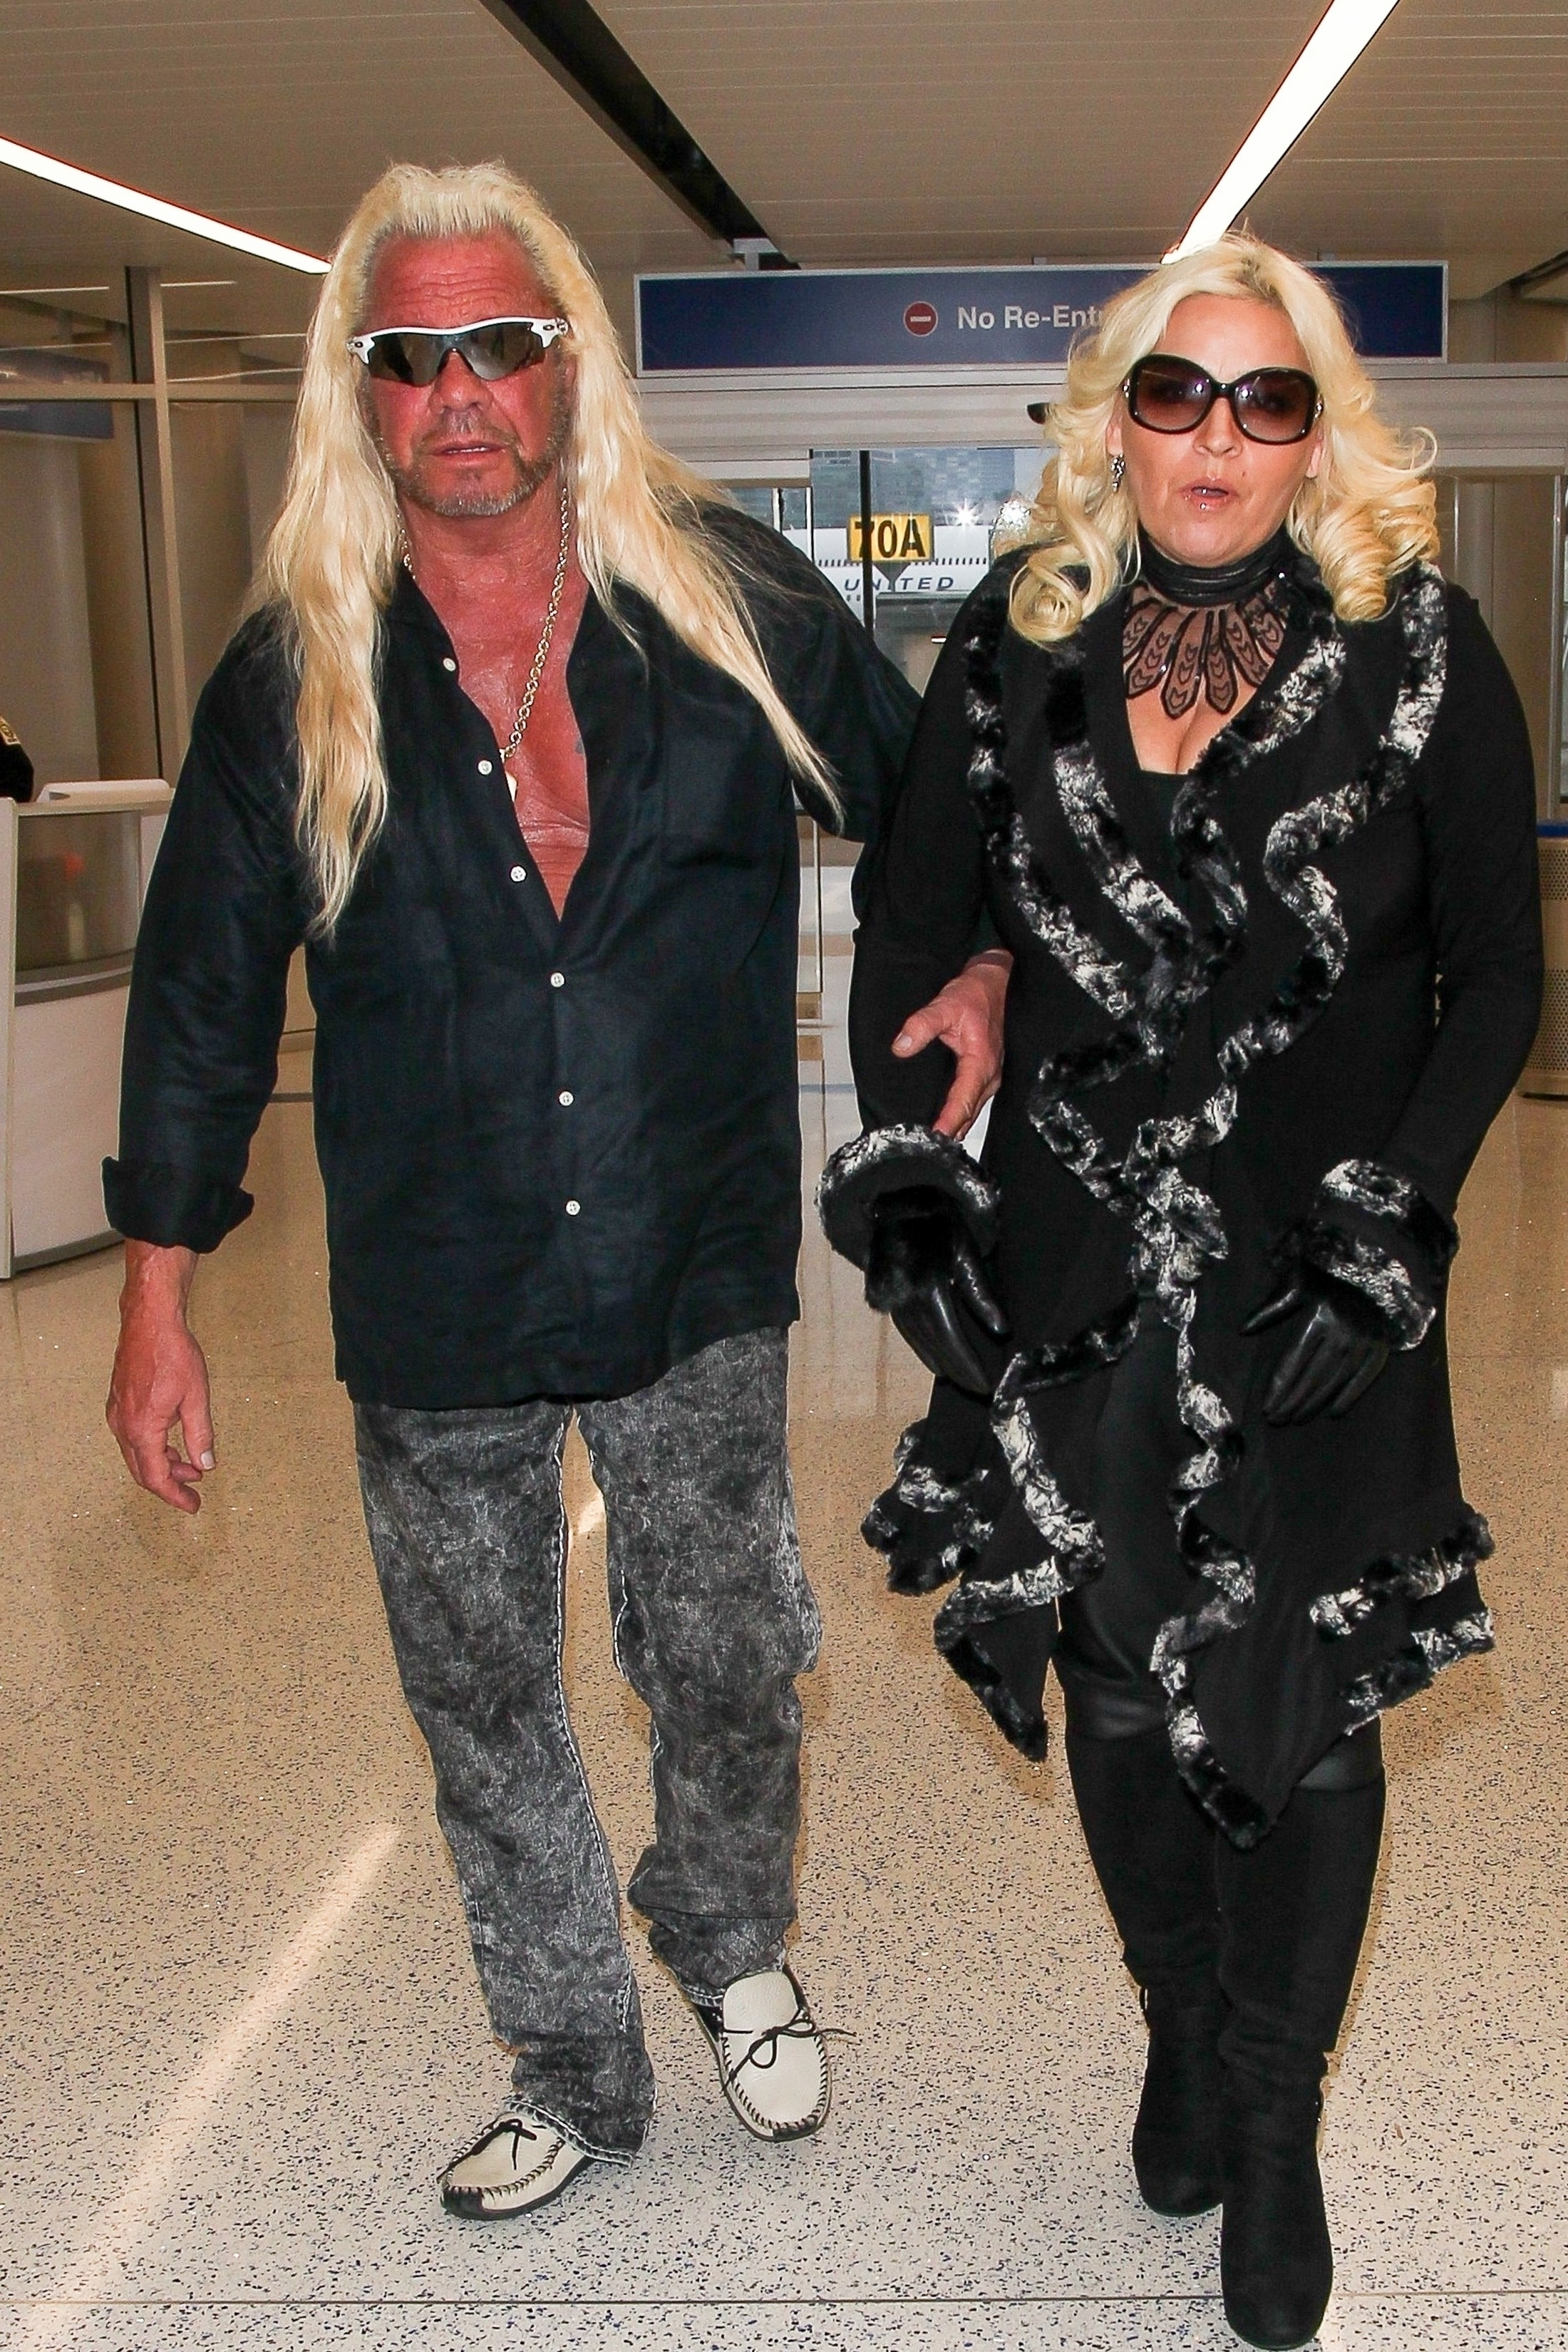 Dog the Bounty Hunter has lost 17 lbs  since Beth Chapman's death